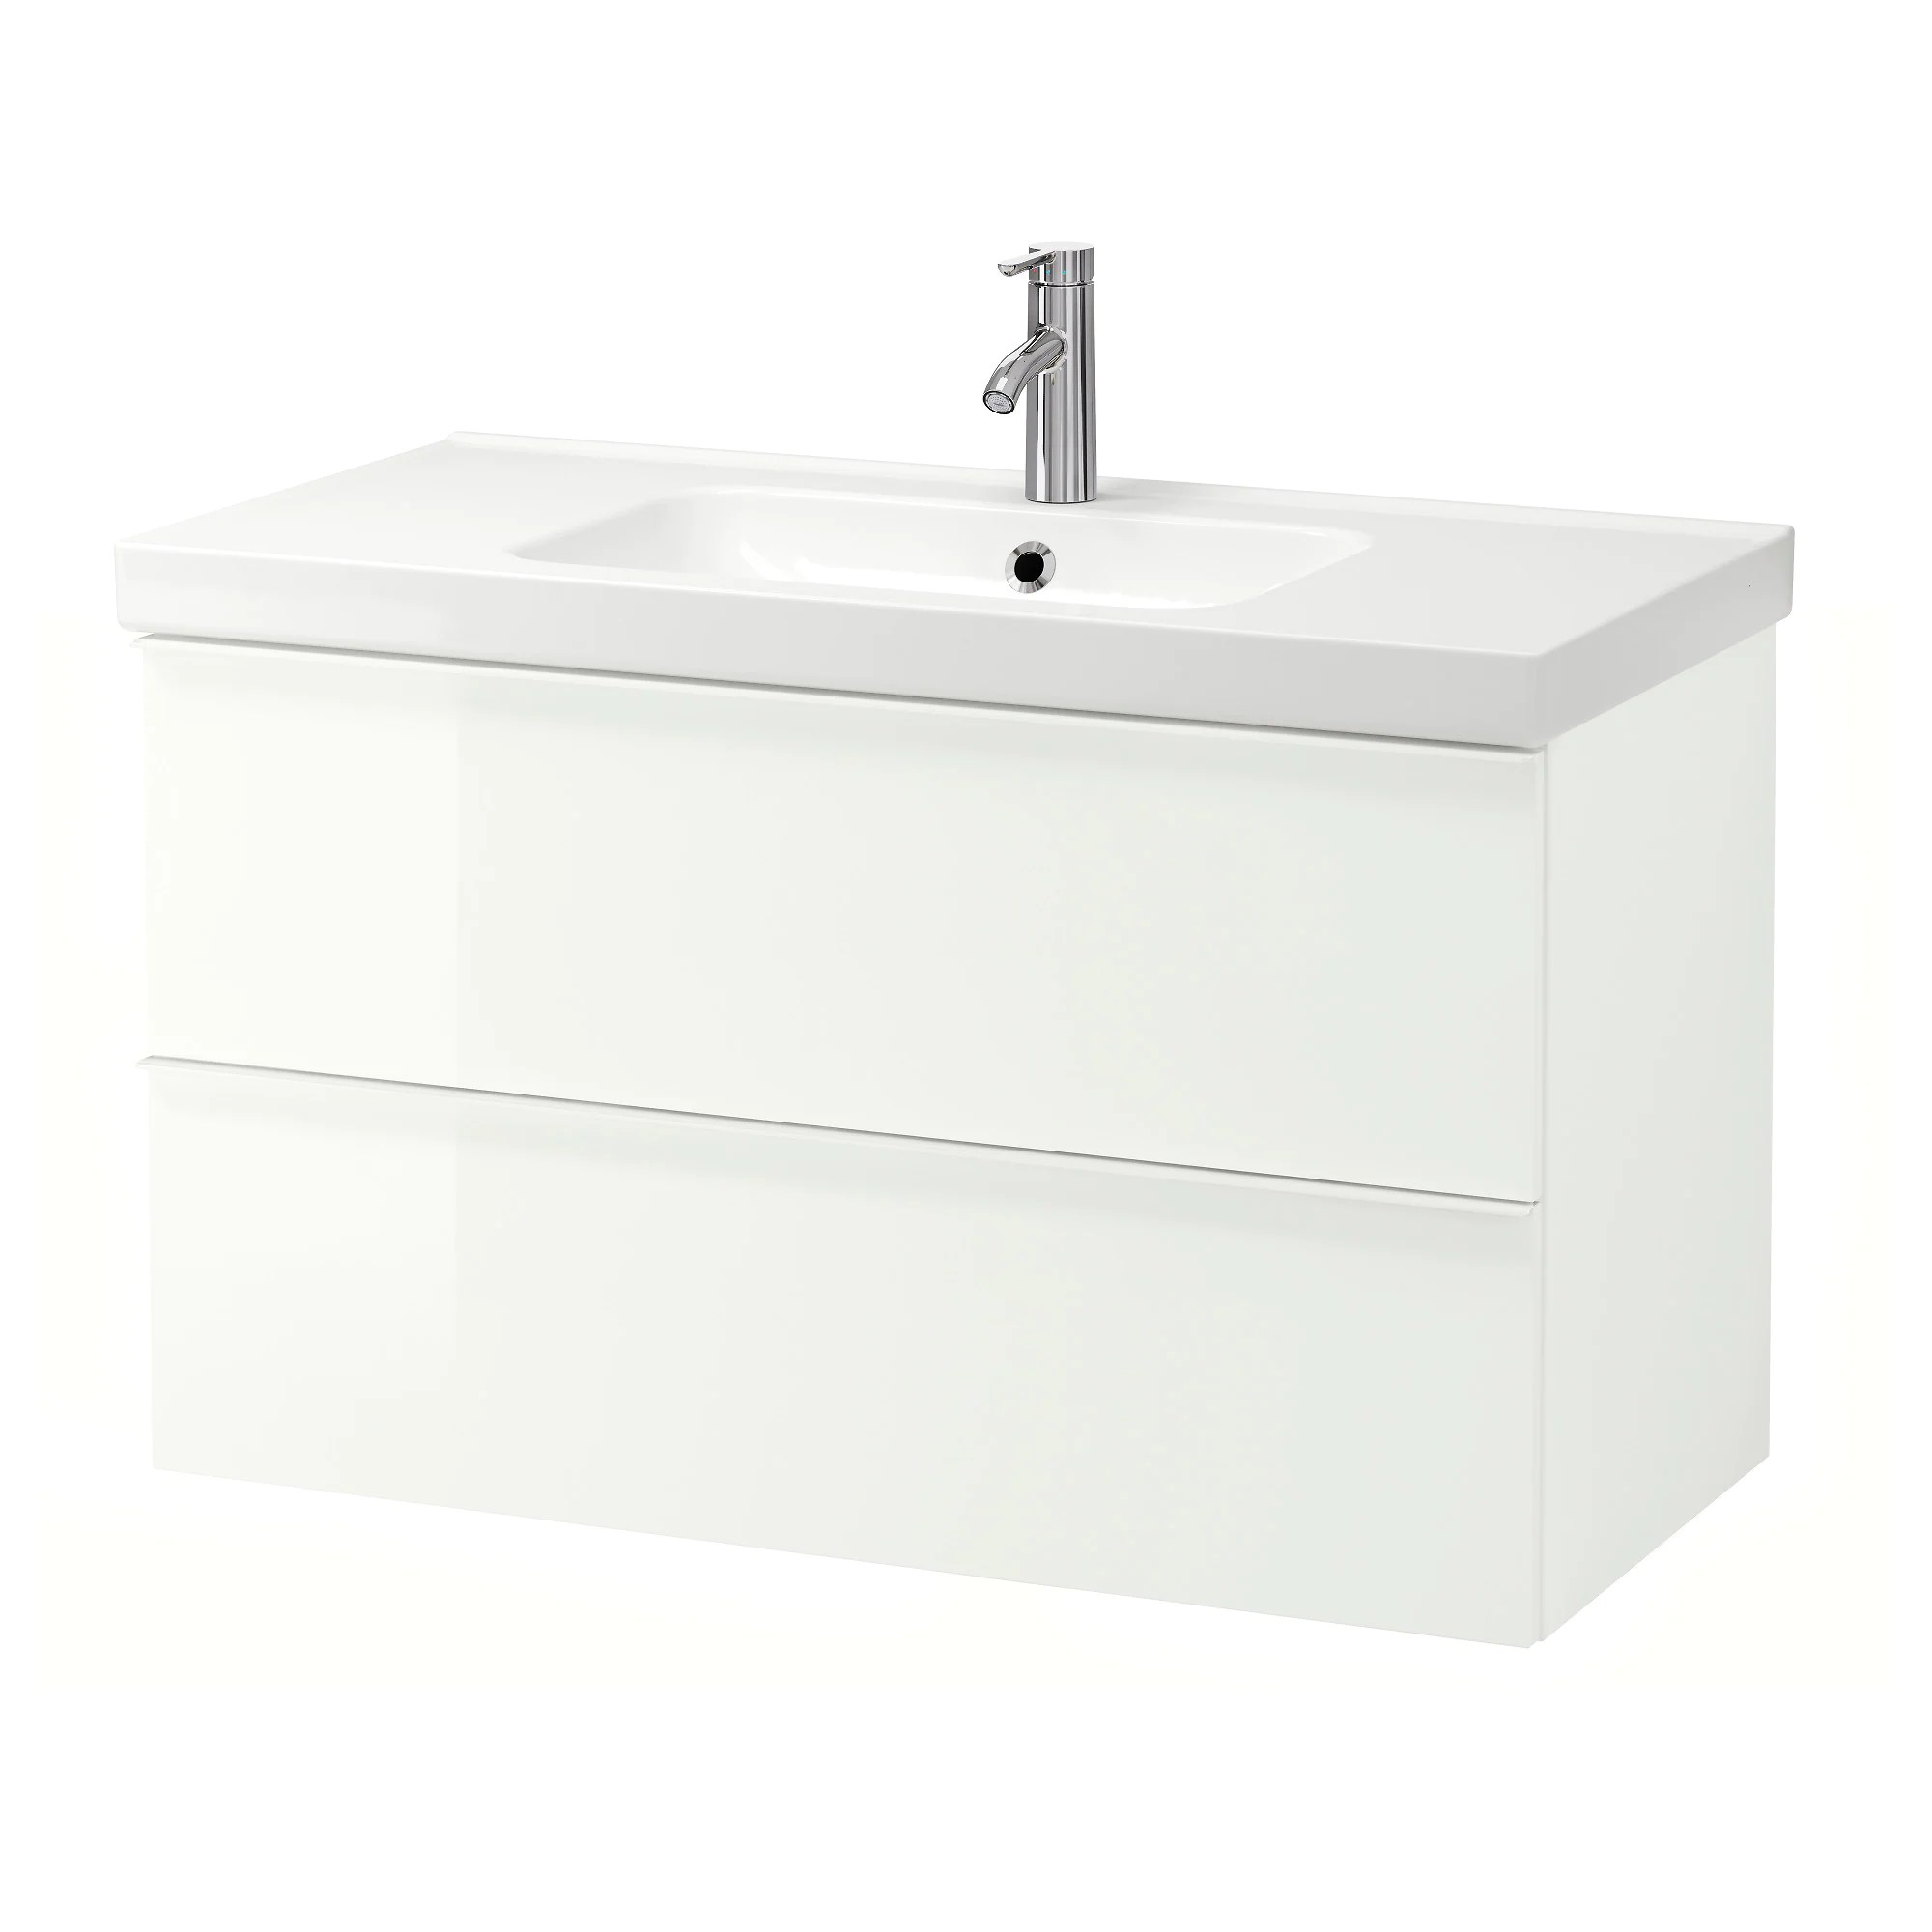 Vanity Ikea Godmorgon Odensvik Sink Cabinet With 2 Drawers White Stained Oak Effect